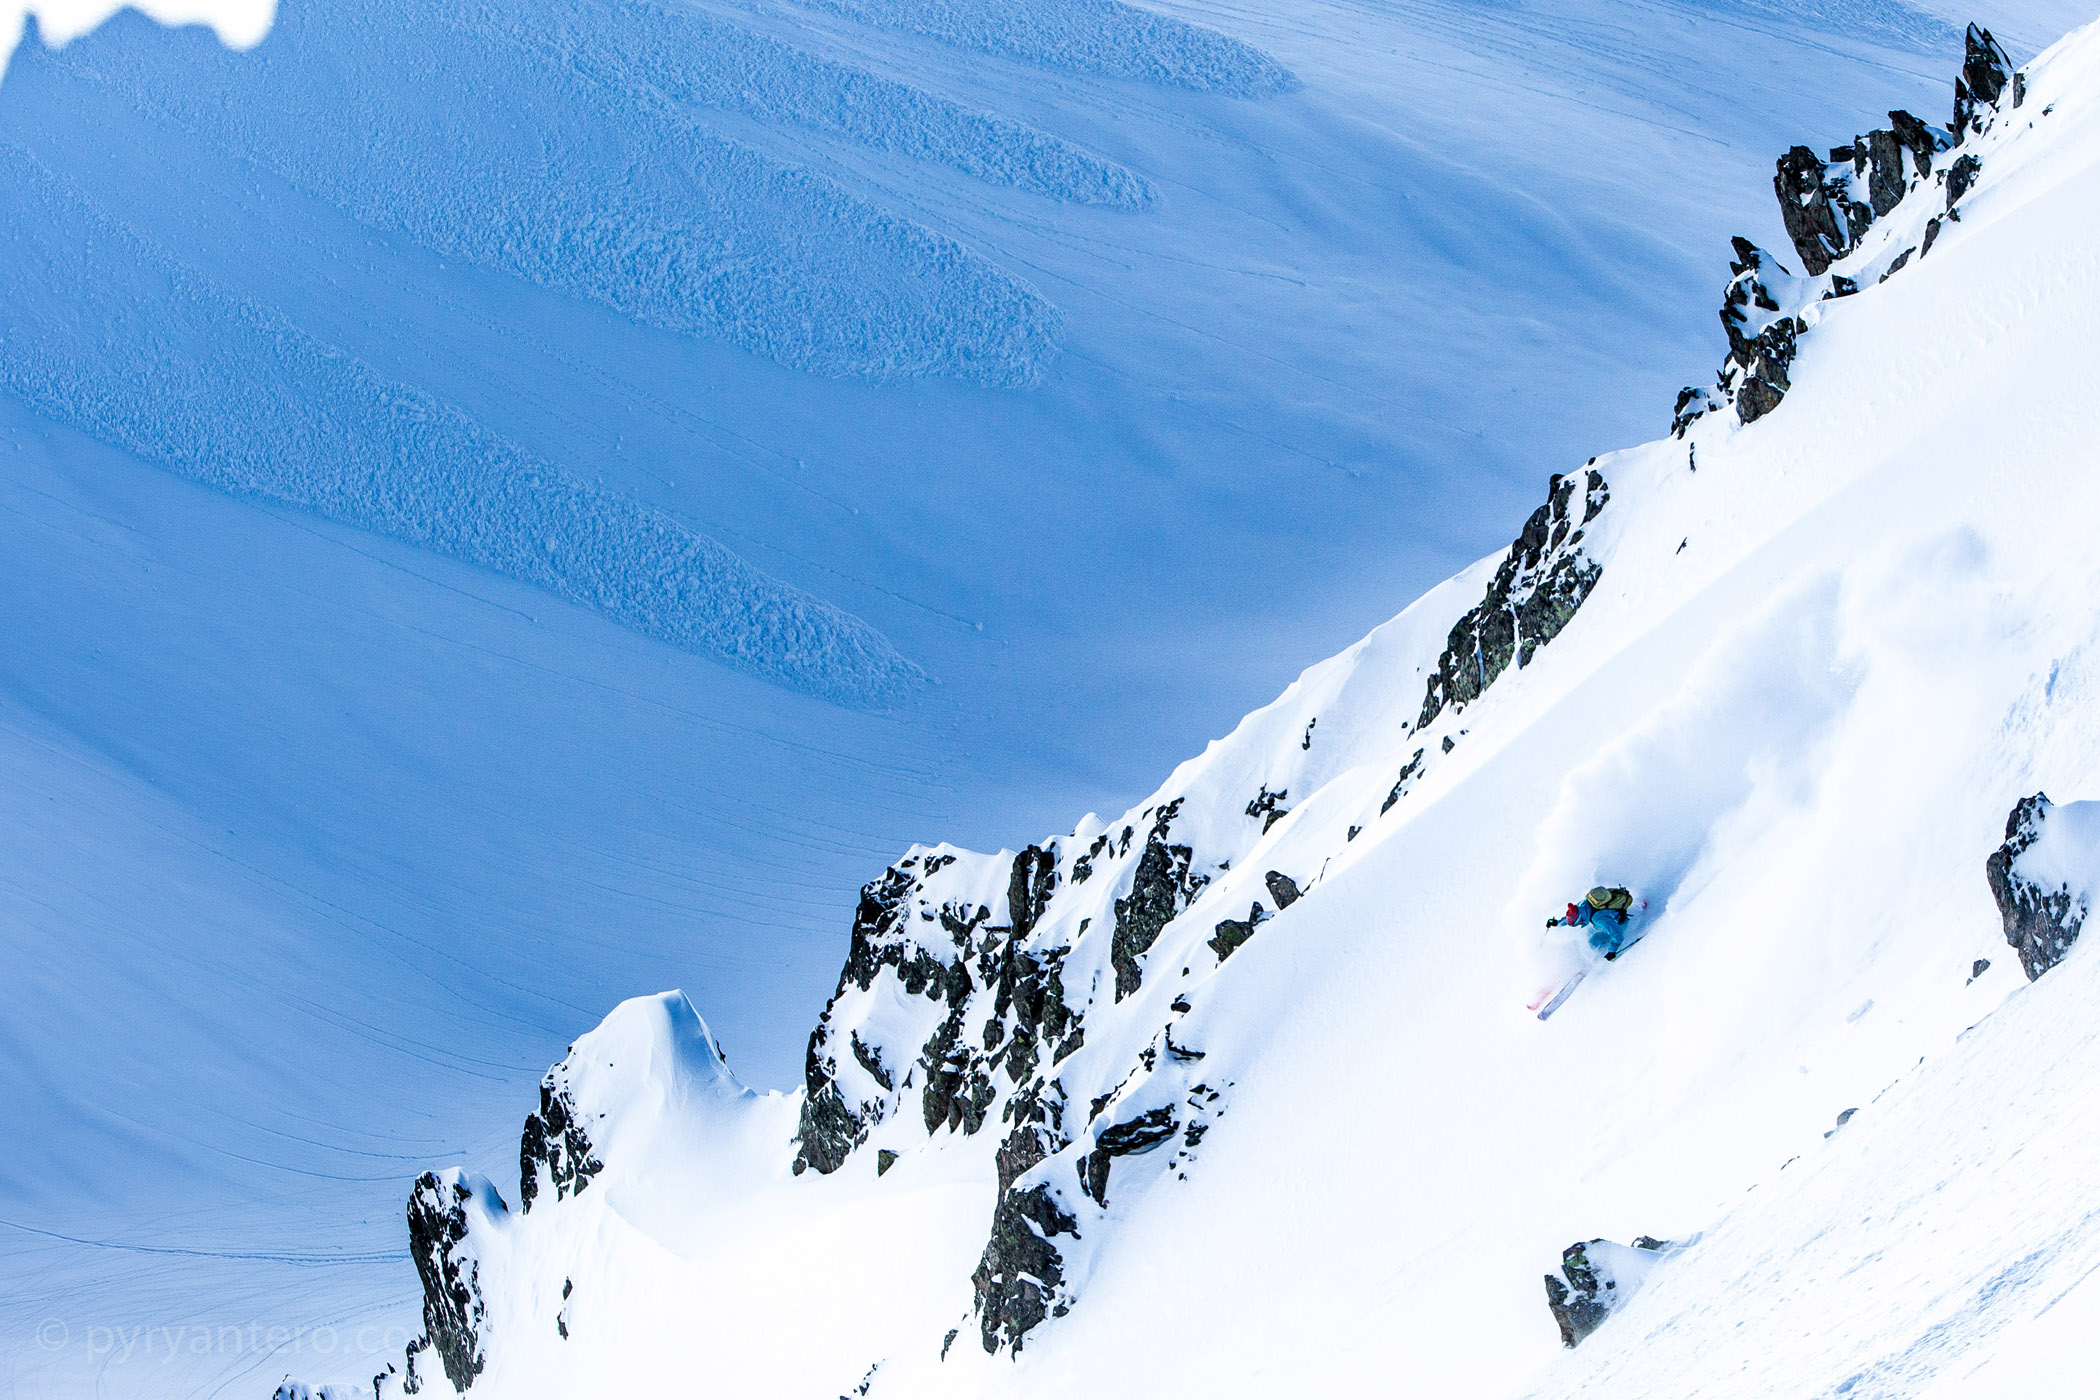 Skiing the Alps with Volkl skies, Chamonix, Mont Blanc, France, © Pyry Antero Photography, Pyry Pietiläinen